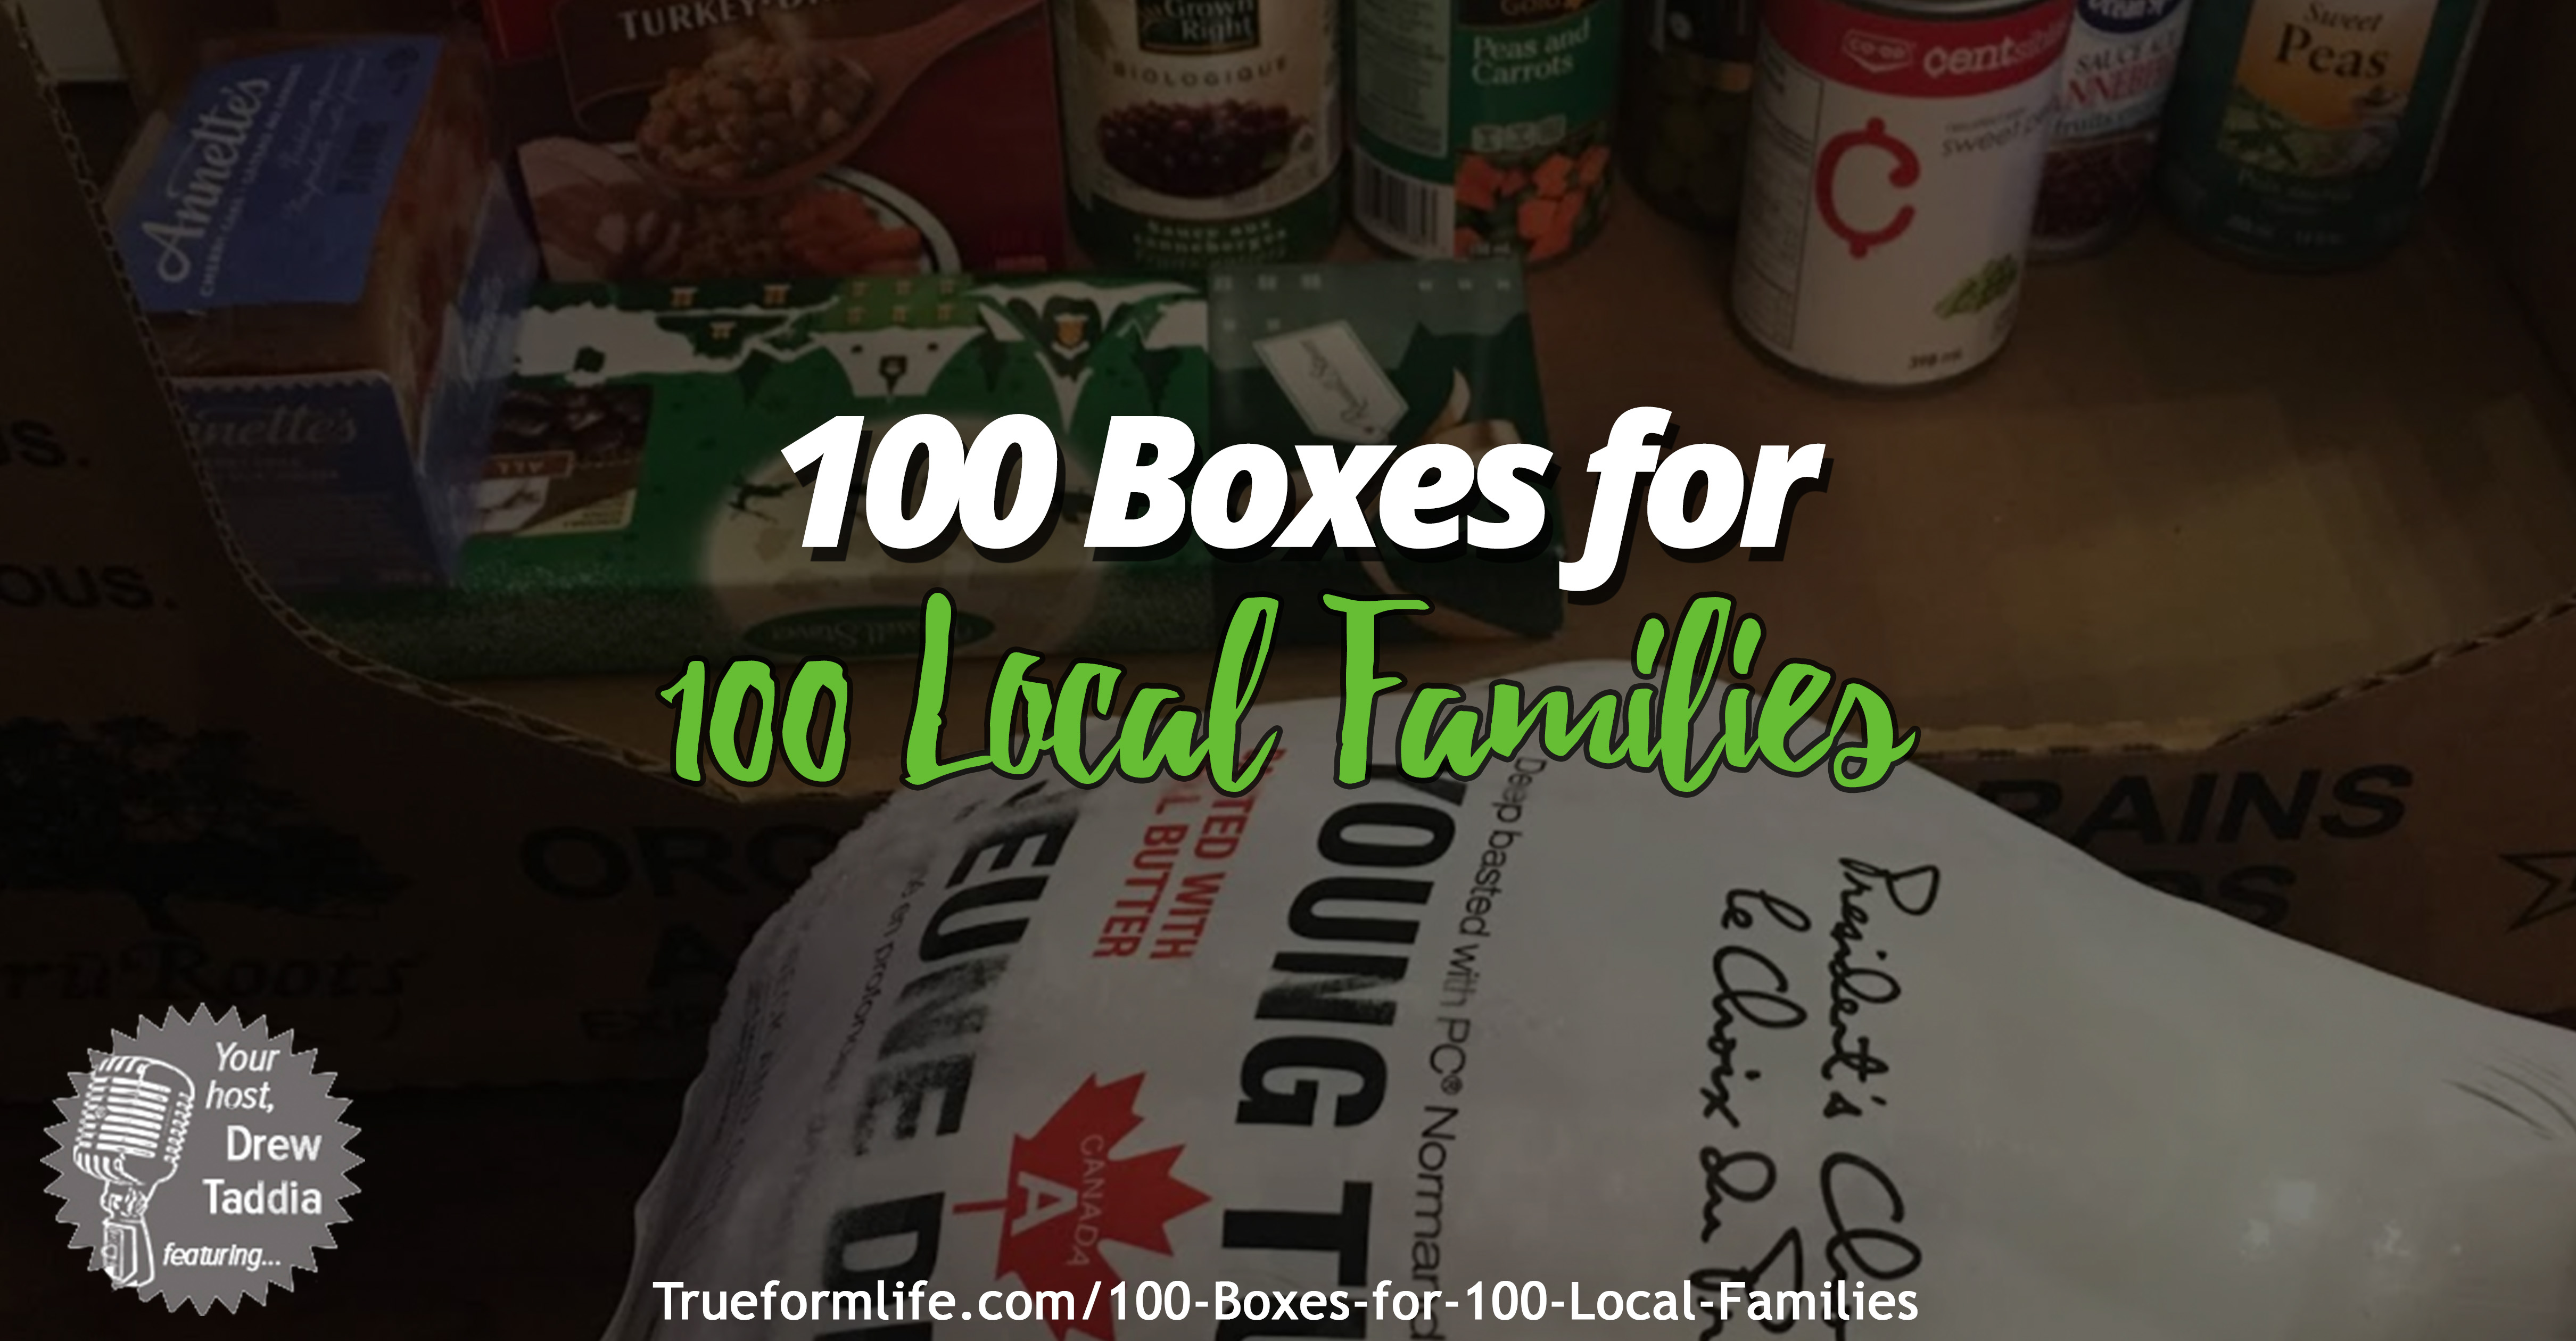 100 boxes for 100 local families